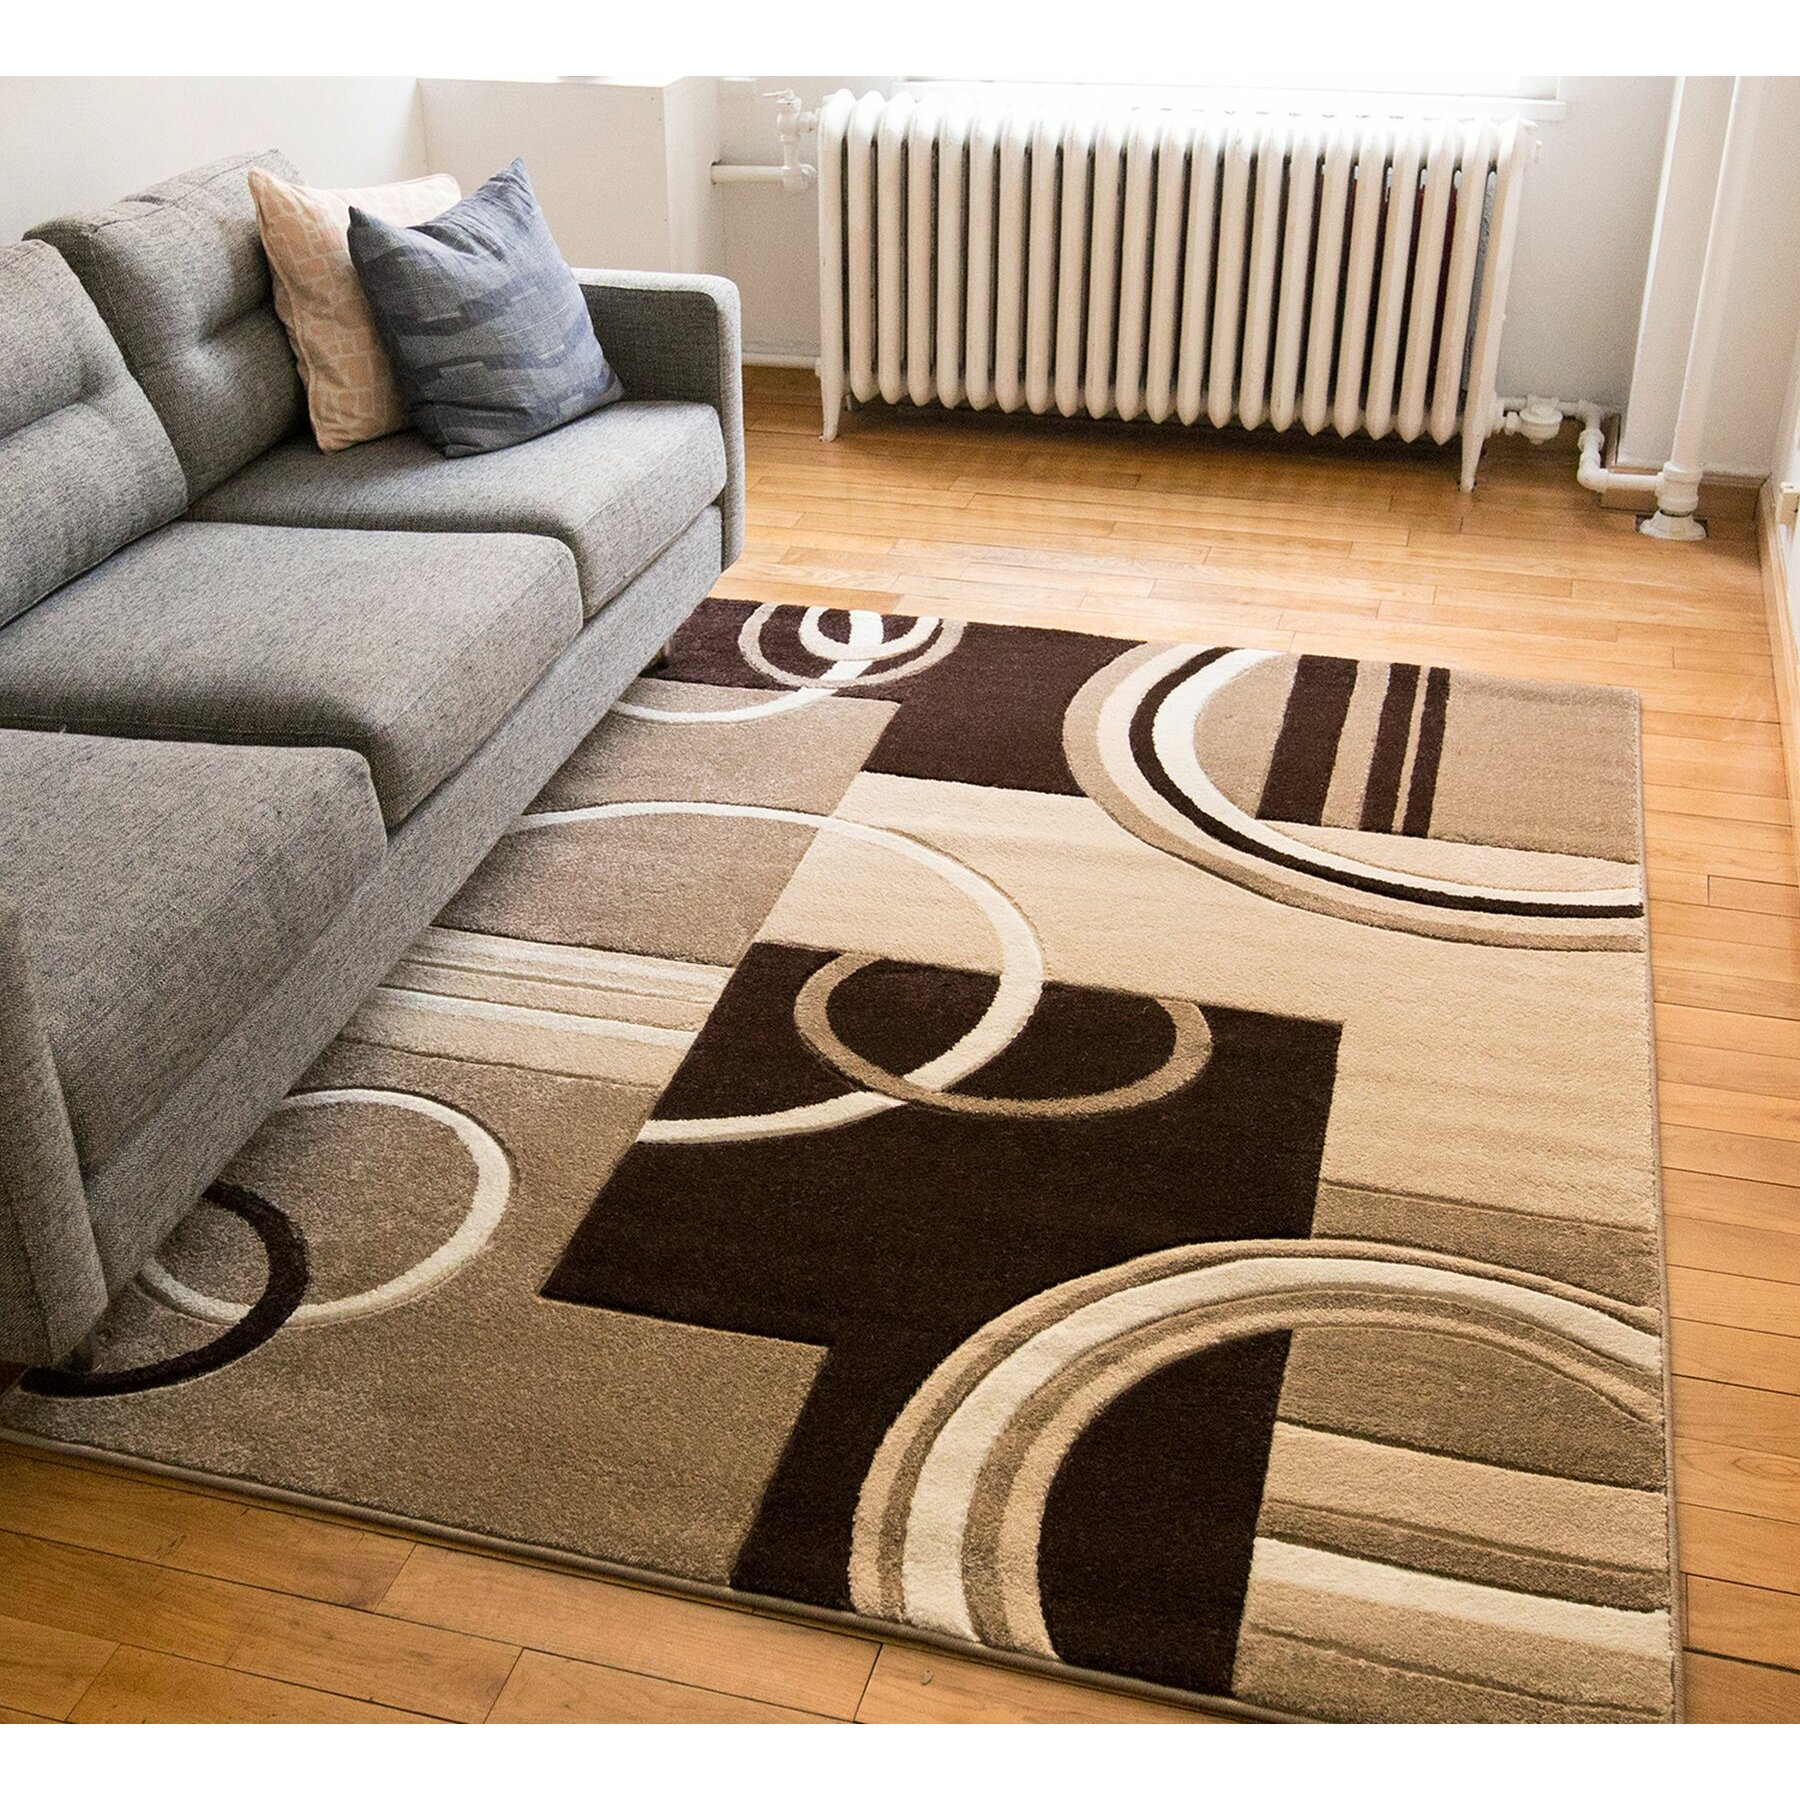 contemporary area rug  roselawnlutheran - well woven ruby galaxy waves contemporary area rug